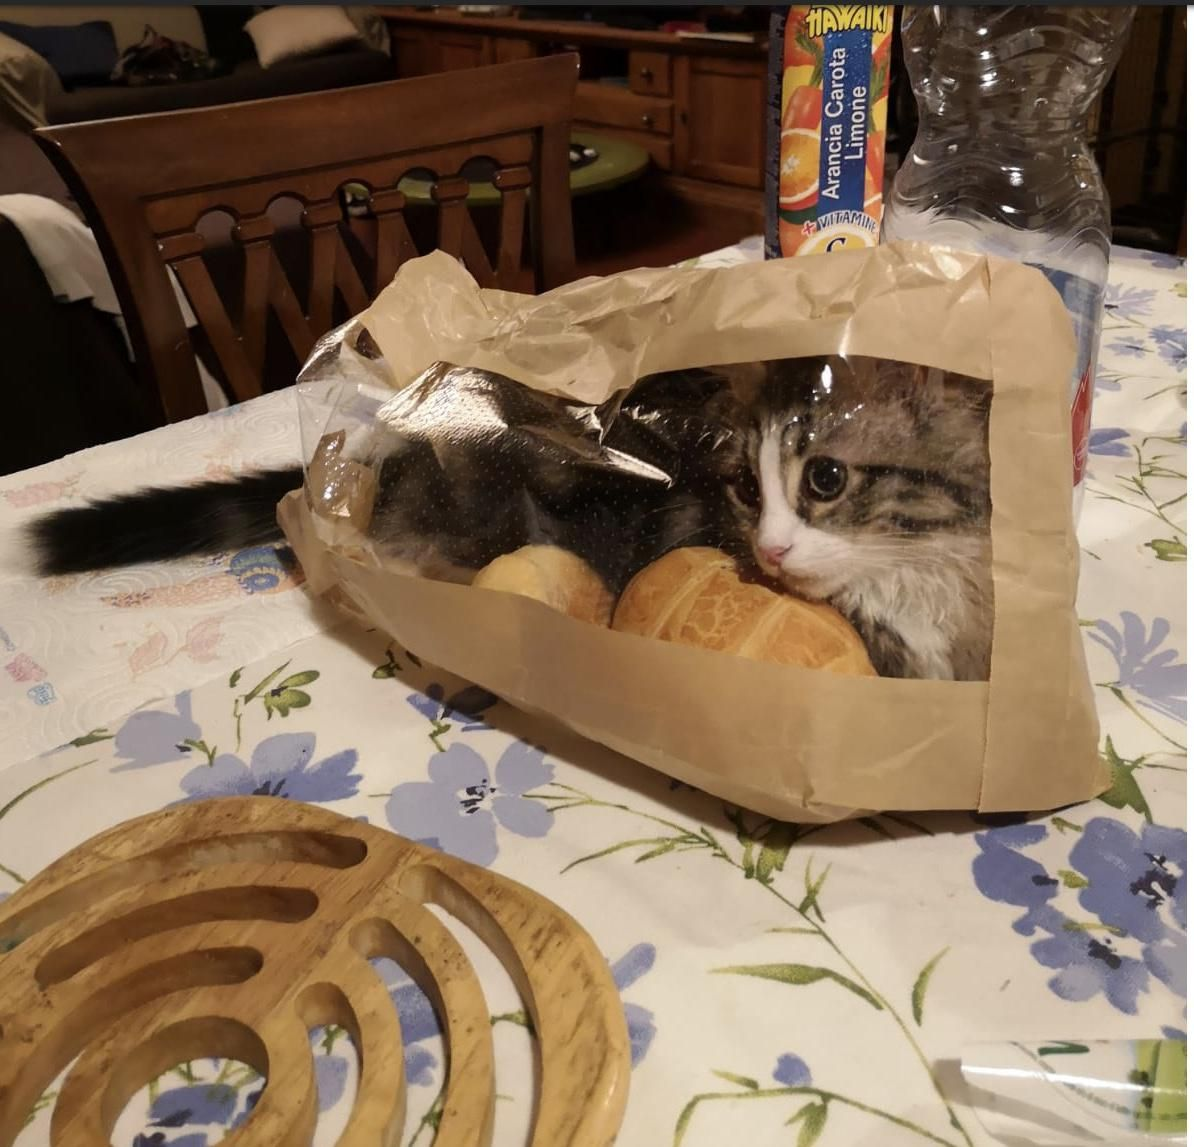 Bought two bread loaves and a cat loaf